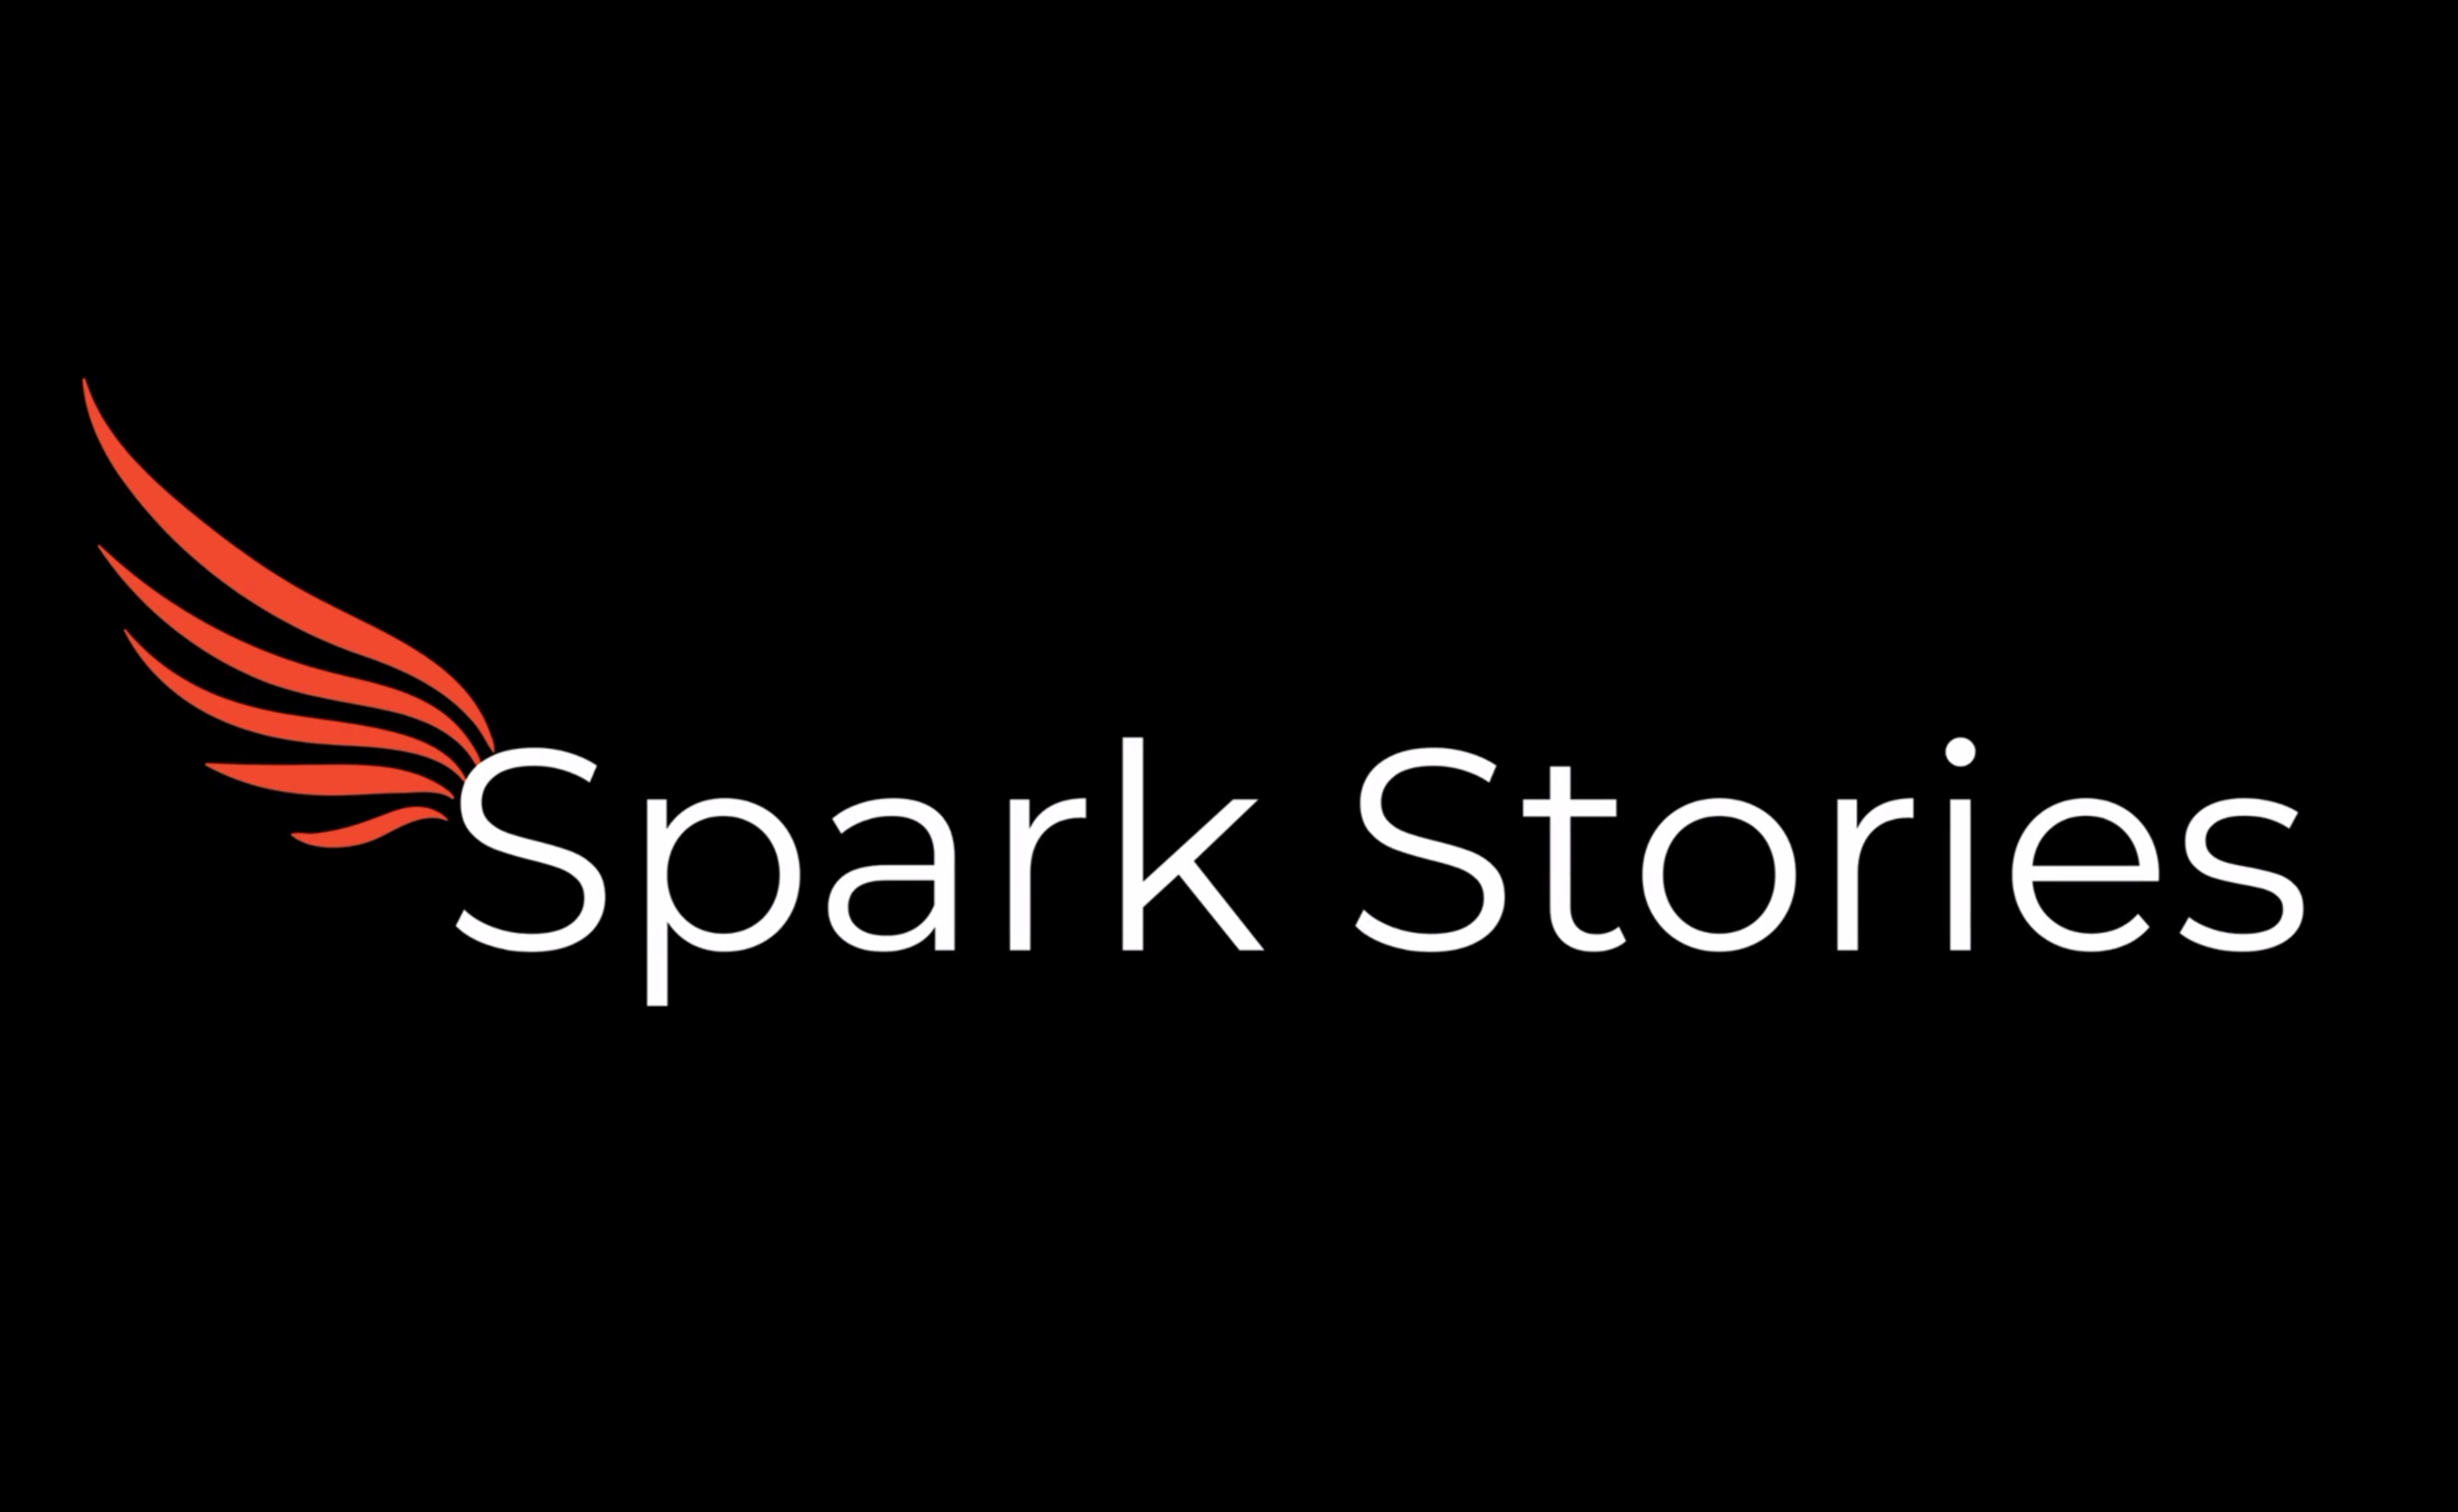 SPARK STORIES - Digital films thoughtfully designed & tailored to promote engagement, relaxation, reminiscence & calming connections for Dementia patients, their families & caregivers